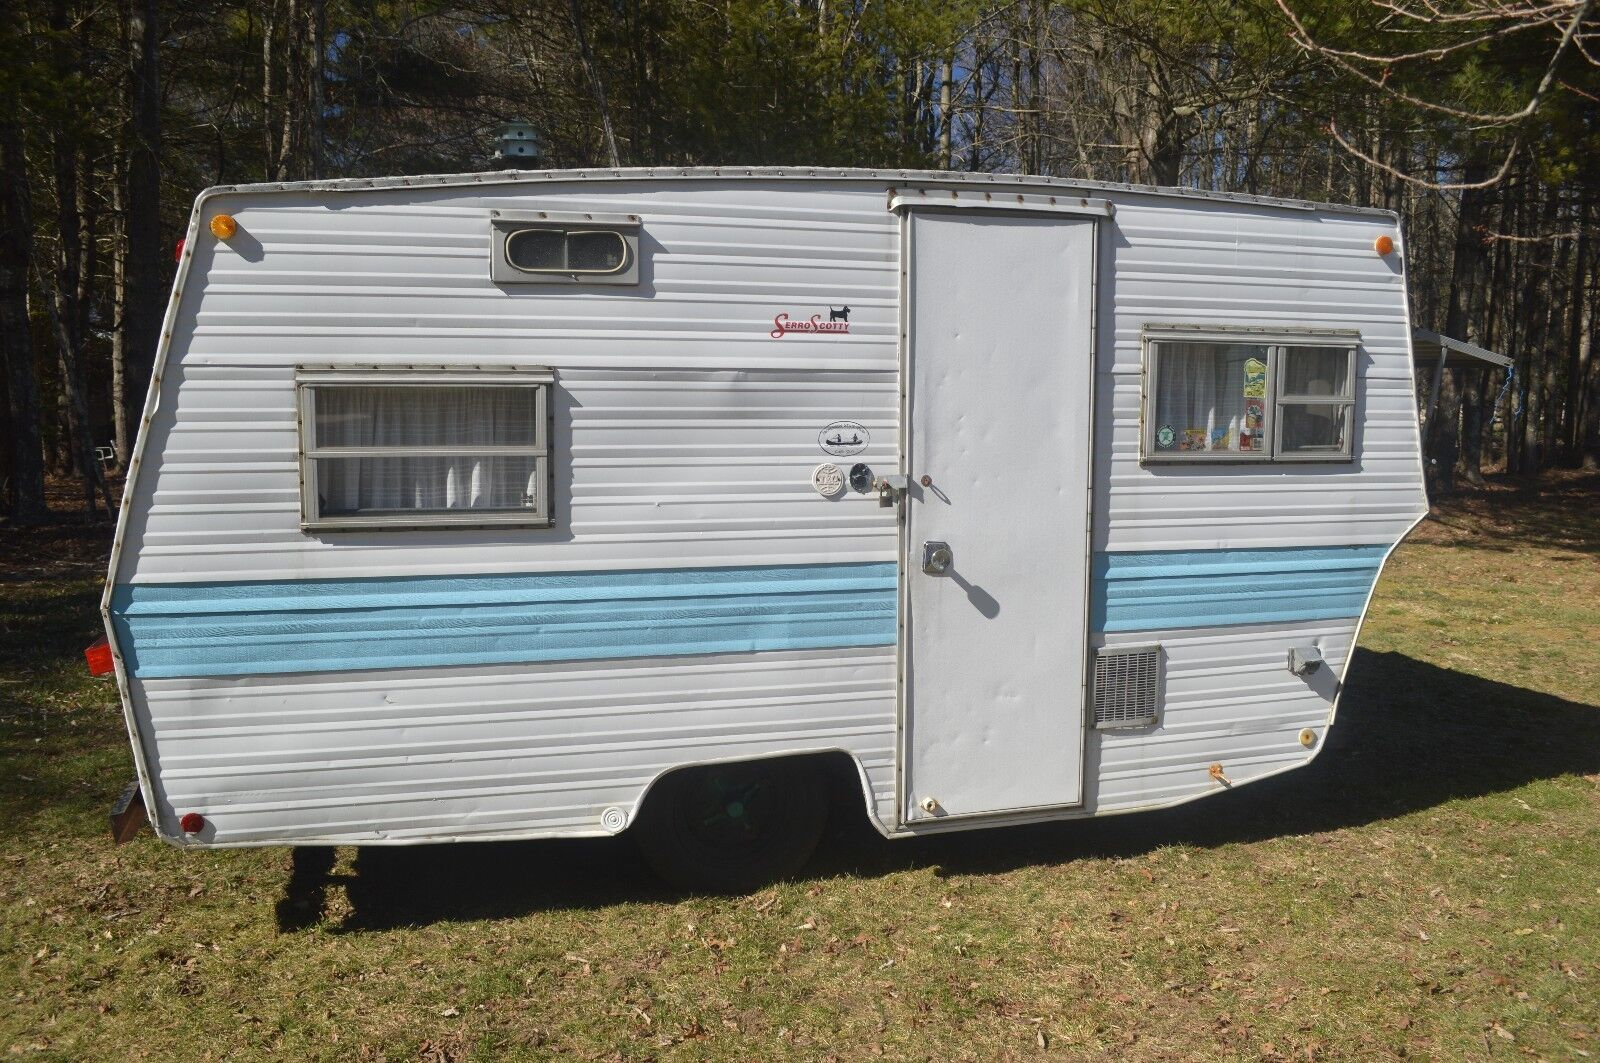 Original Campers For Sale  Buy And Sell Your New Or Used Camper